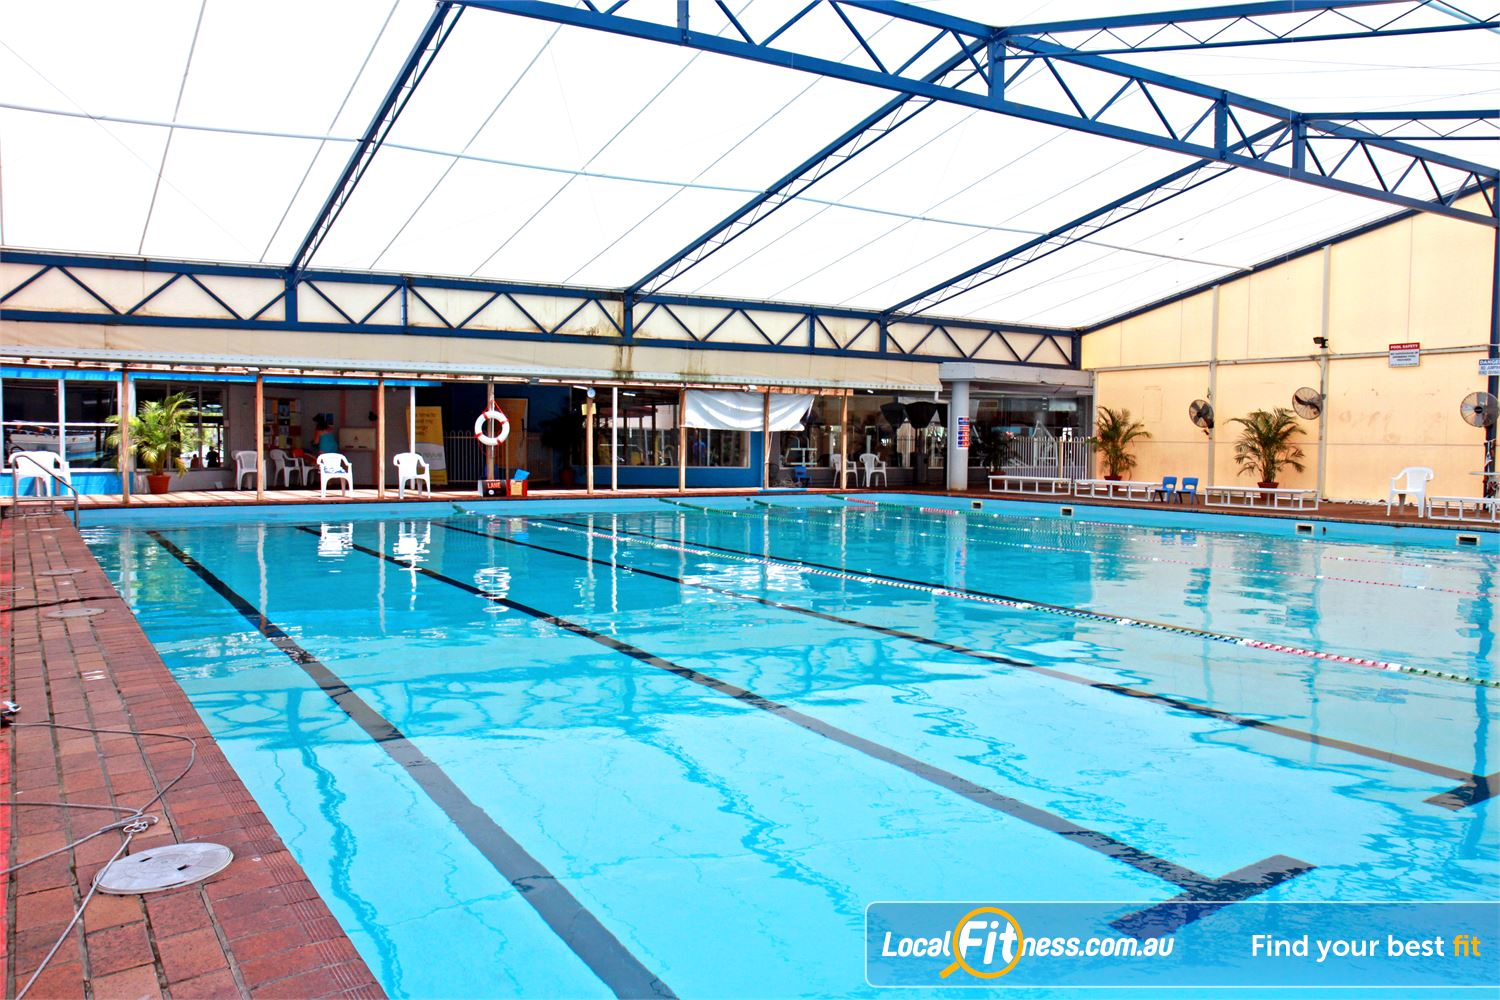 Goodlife Health Clubs Alexandra Hills out indoor Alex Hill swimming pool is perfect for lap lane swimming all year round.